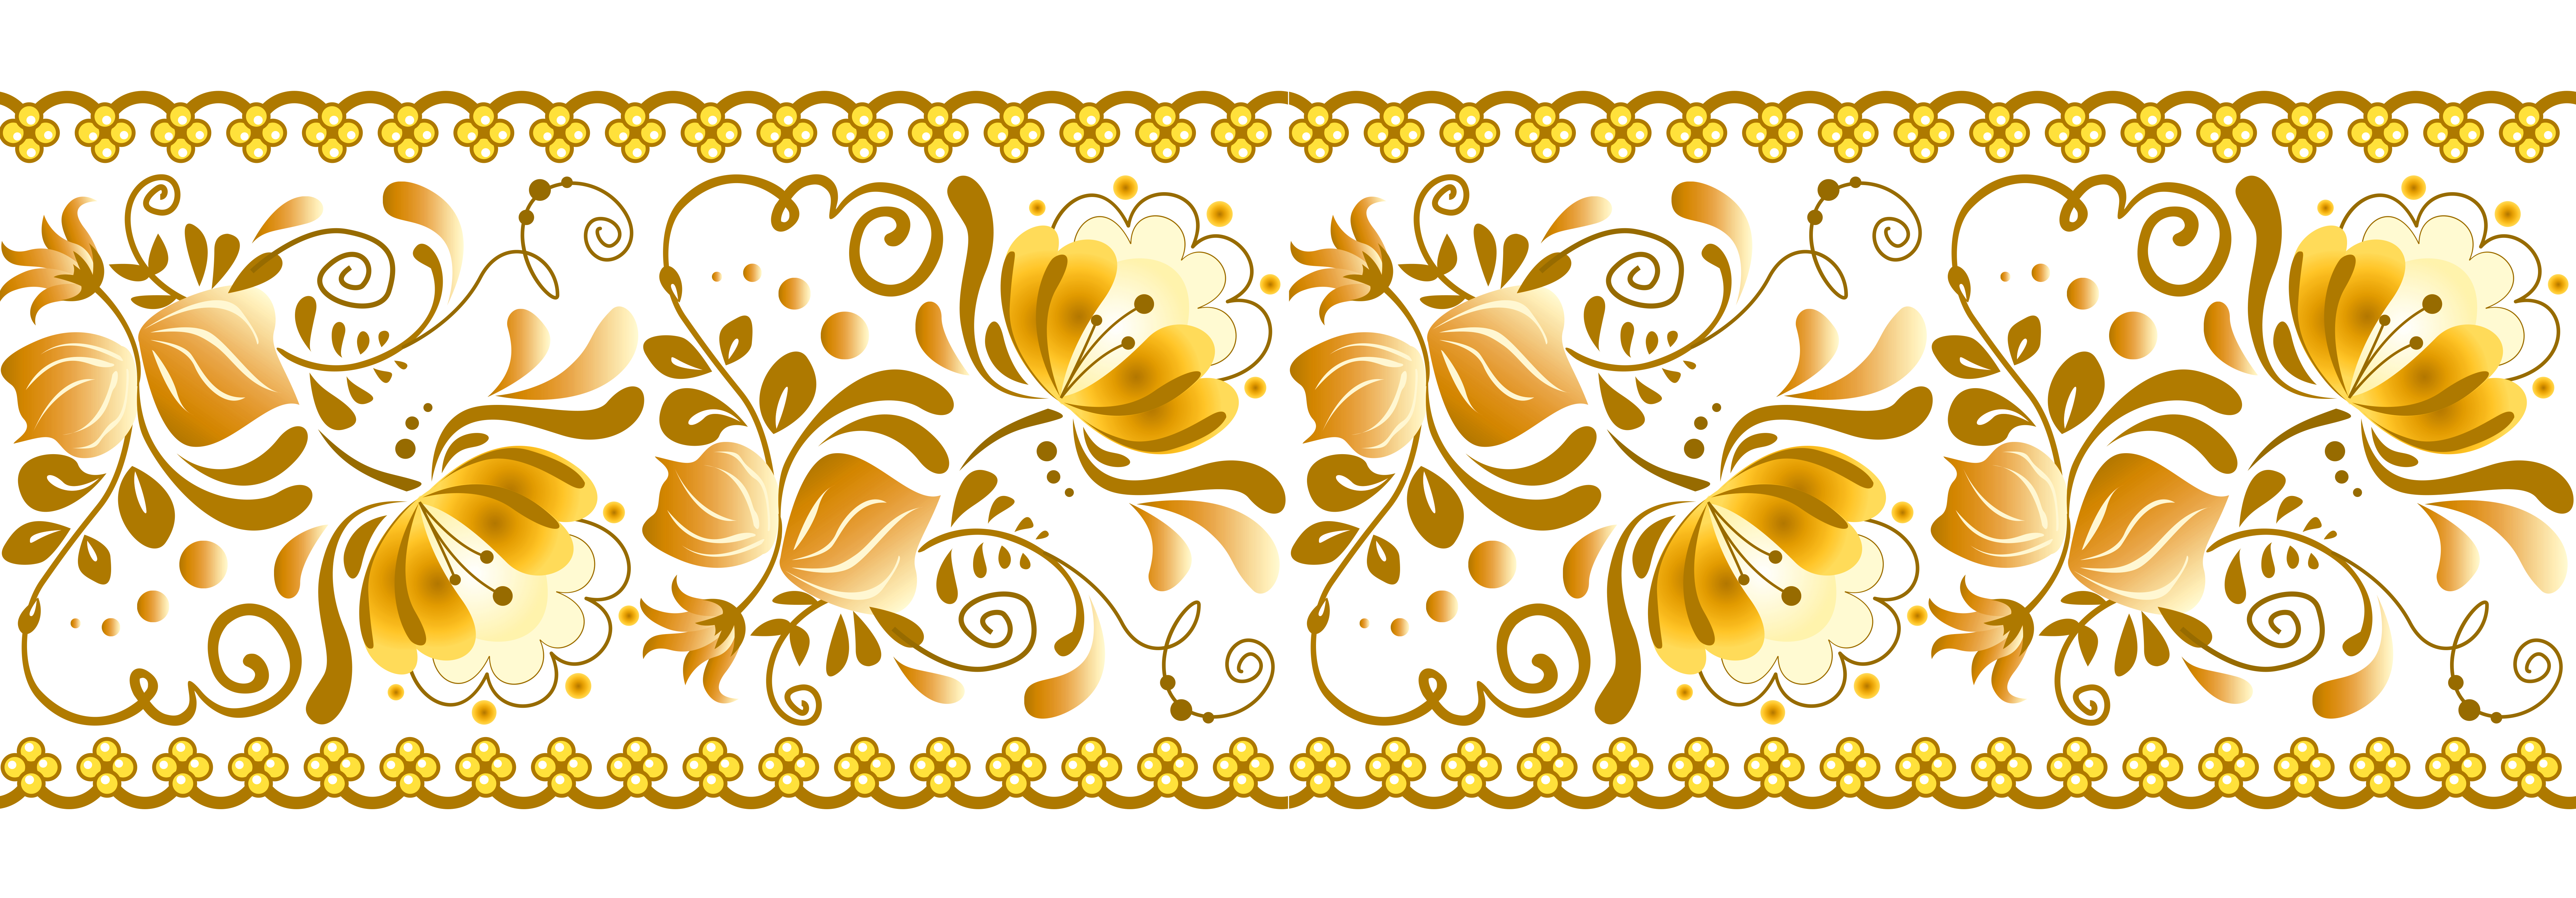 Wheat clipart decoration. Yellow png transparent malek